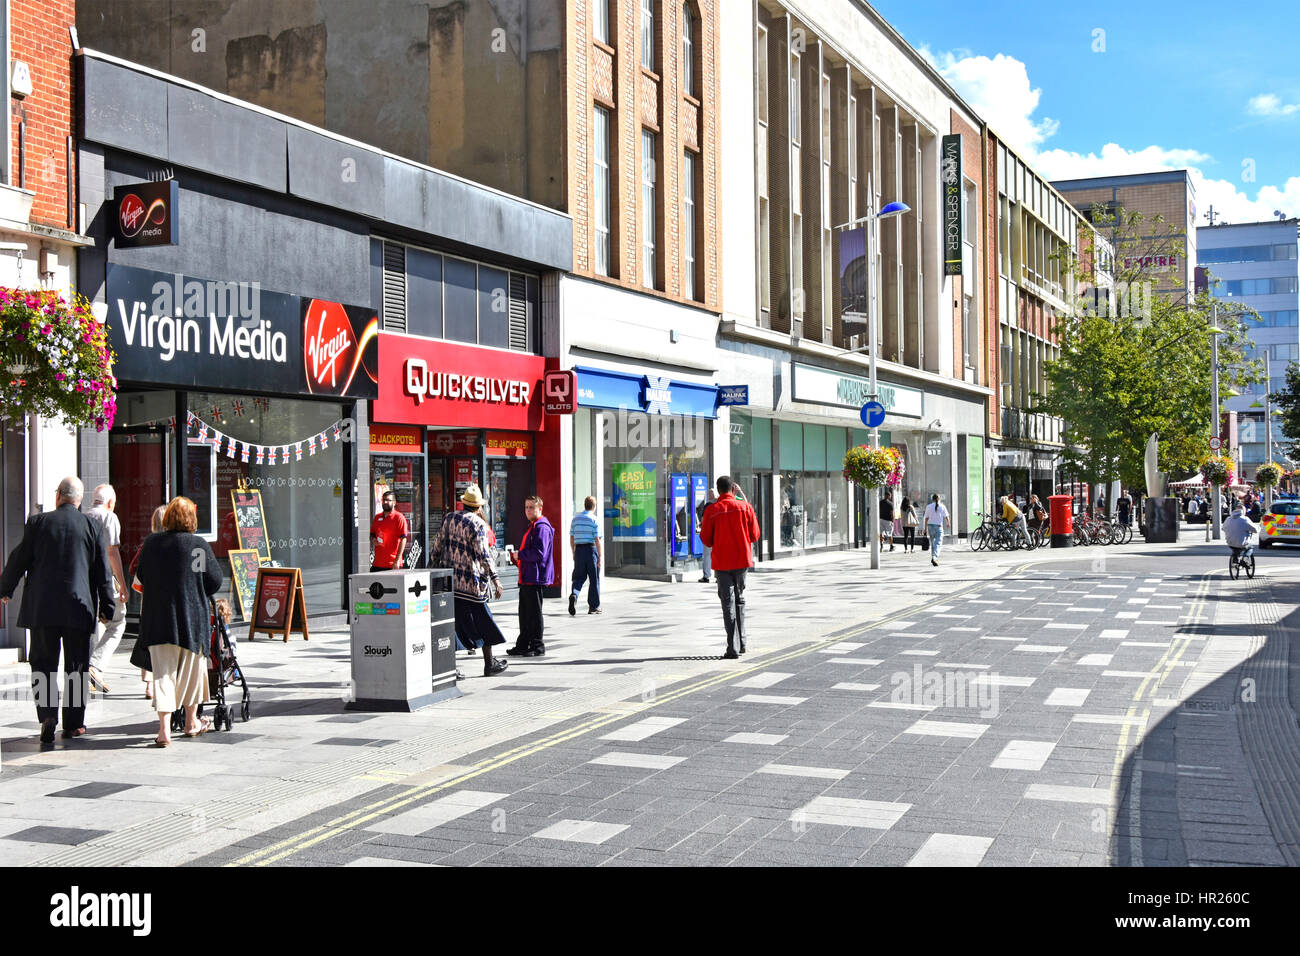 Shoppers high street retail shopping area in town centre Slough Berkshire UK paved-over road prioritised for pedestrians - Stock Image